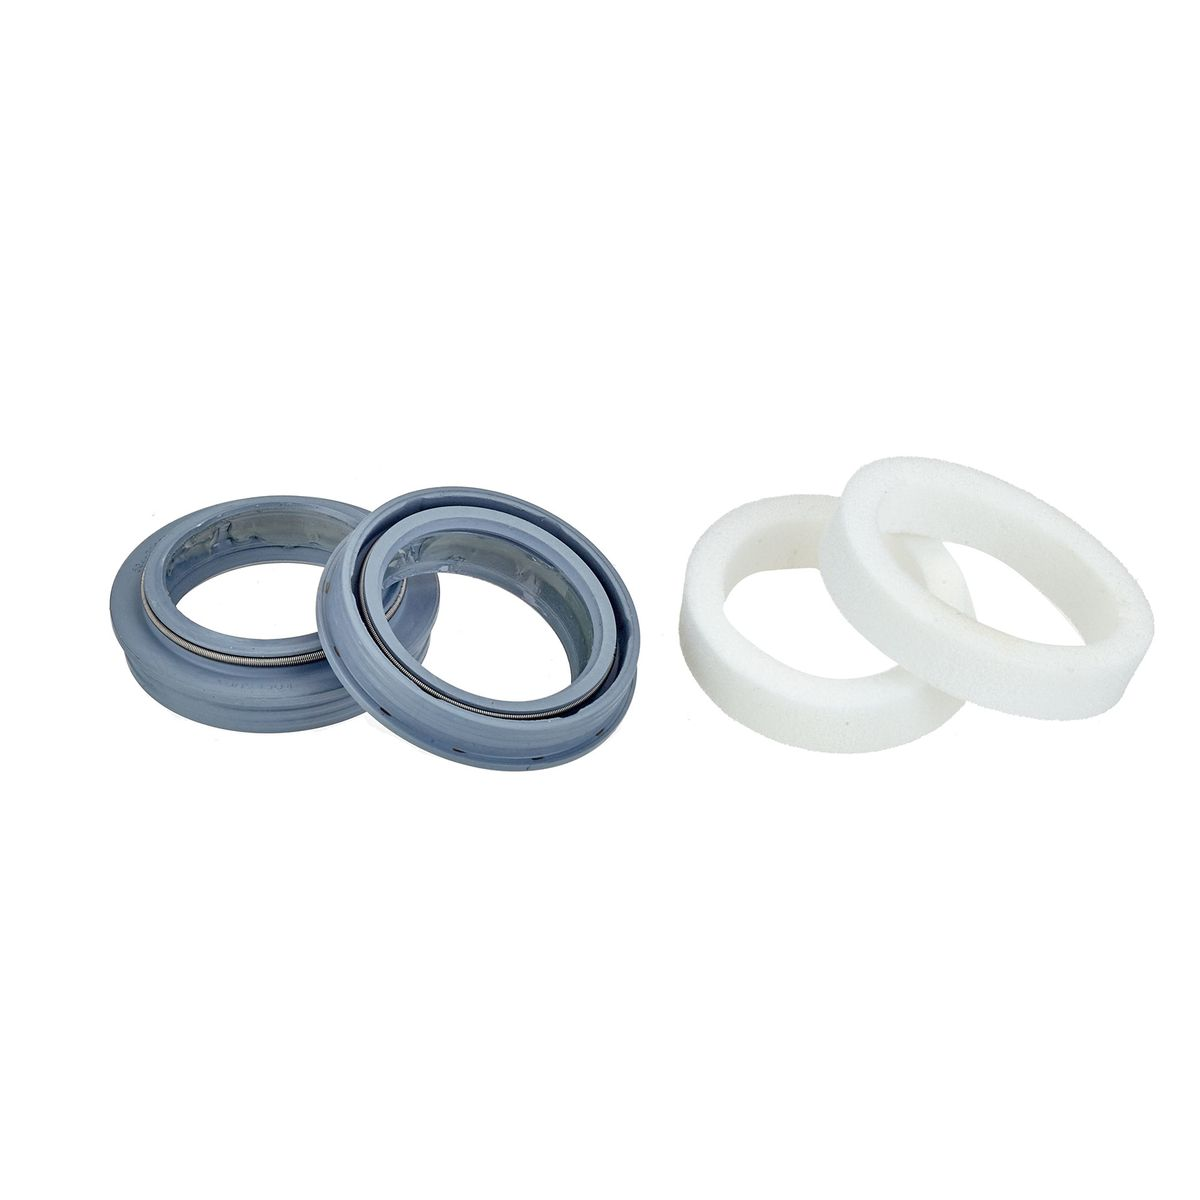 32 mm seal kit